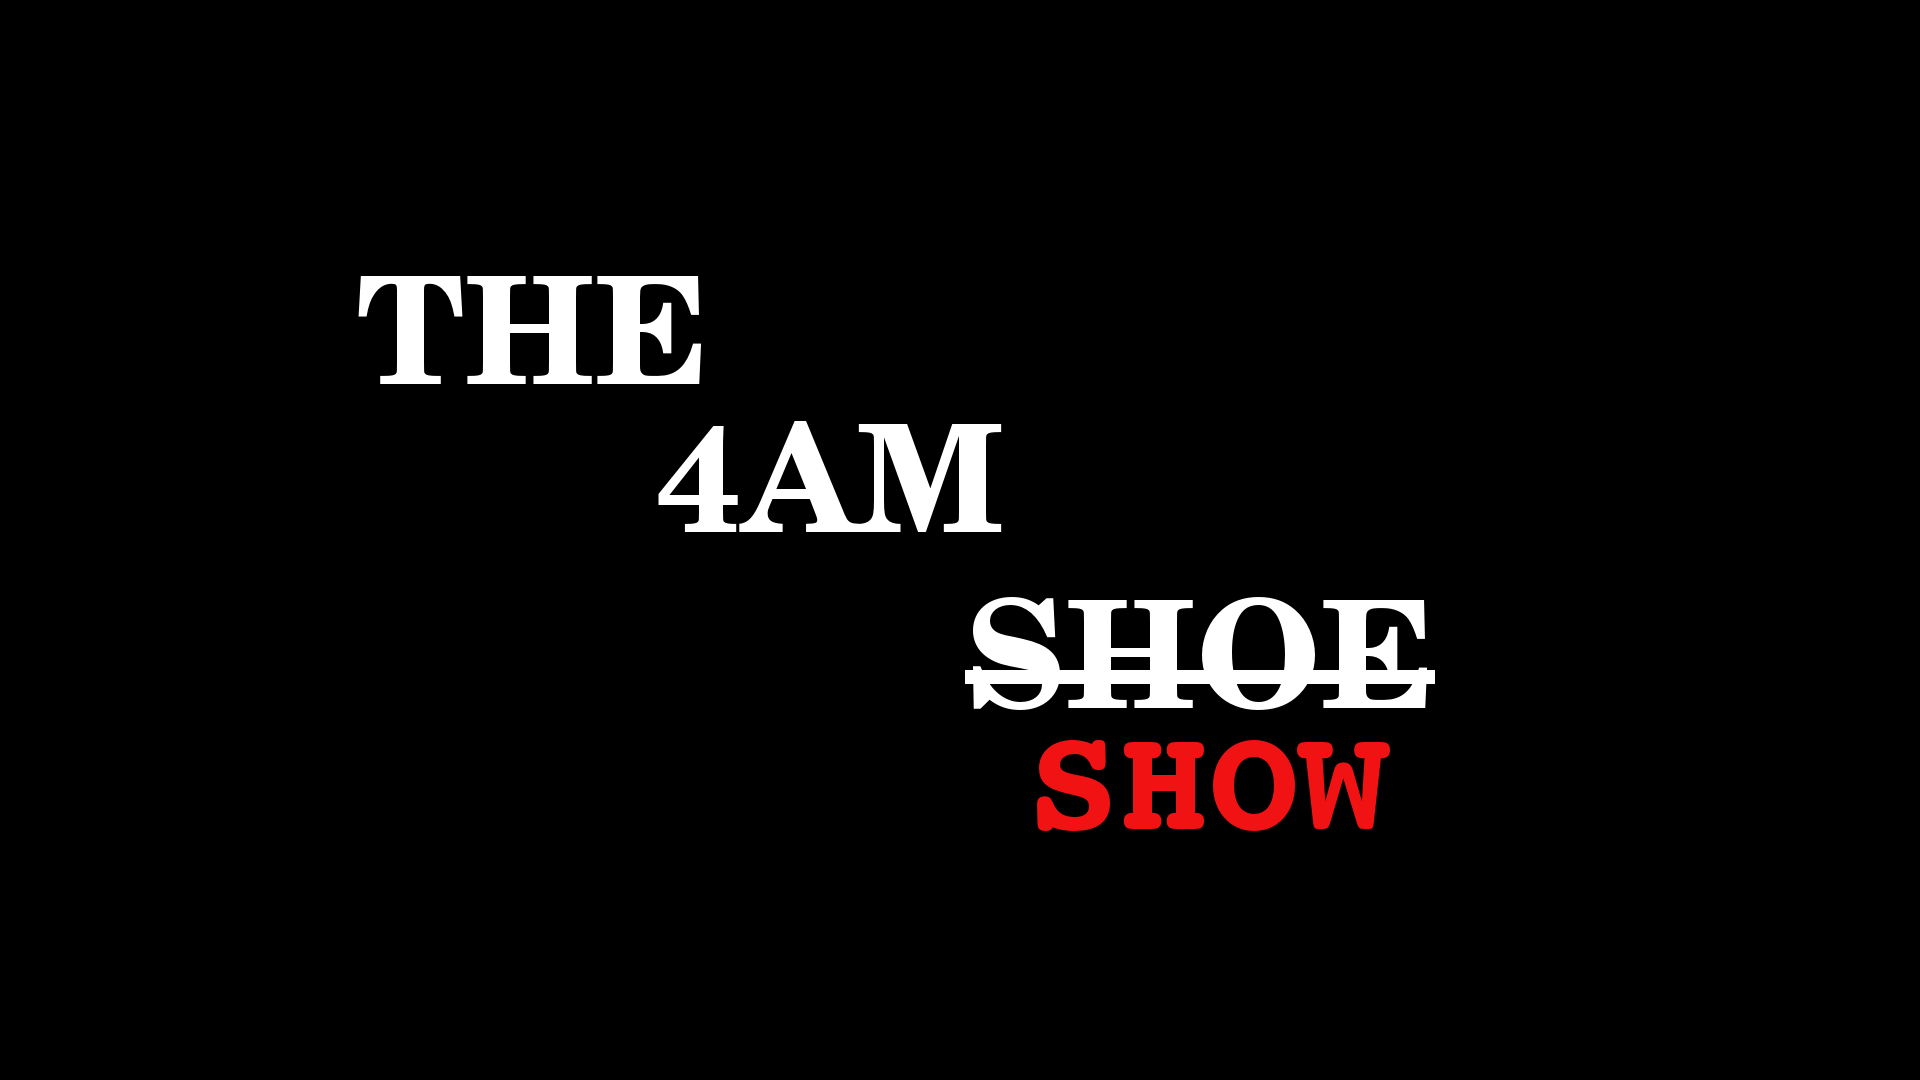 The 4AM Show